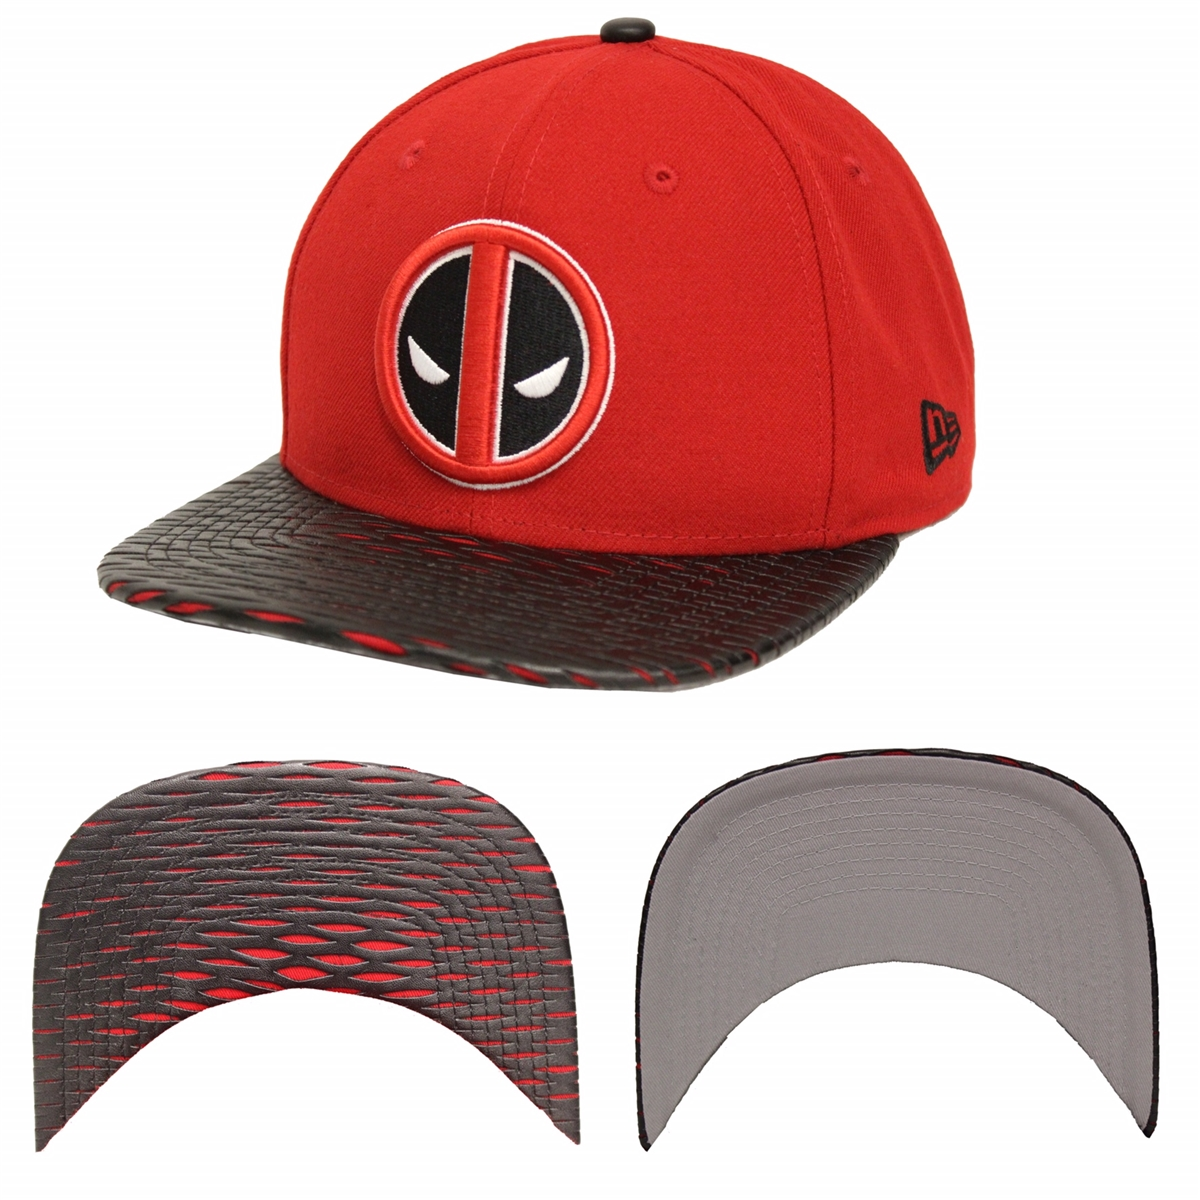 New Era 9Fifty Leather Rip Deadpool Red Black Snapback d41bbcc05e6